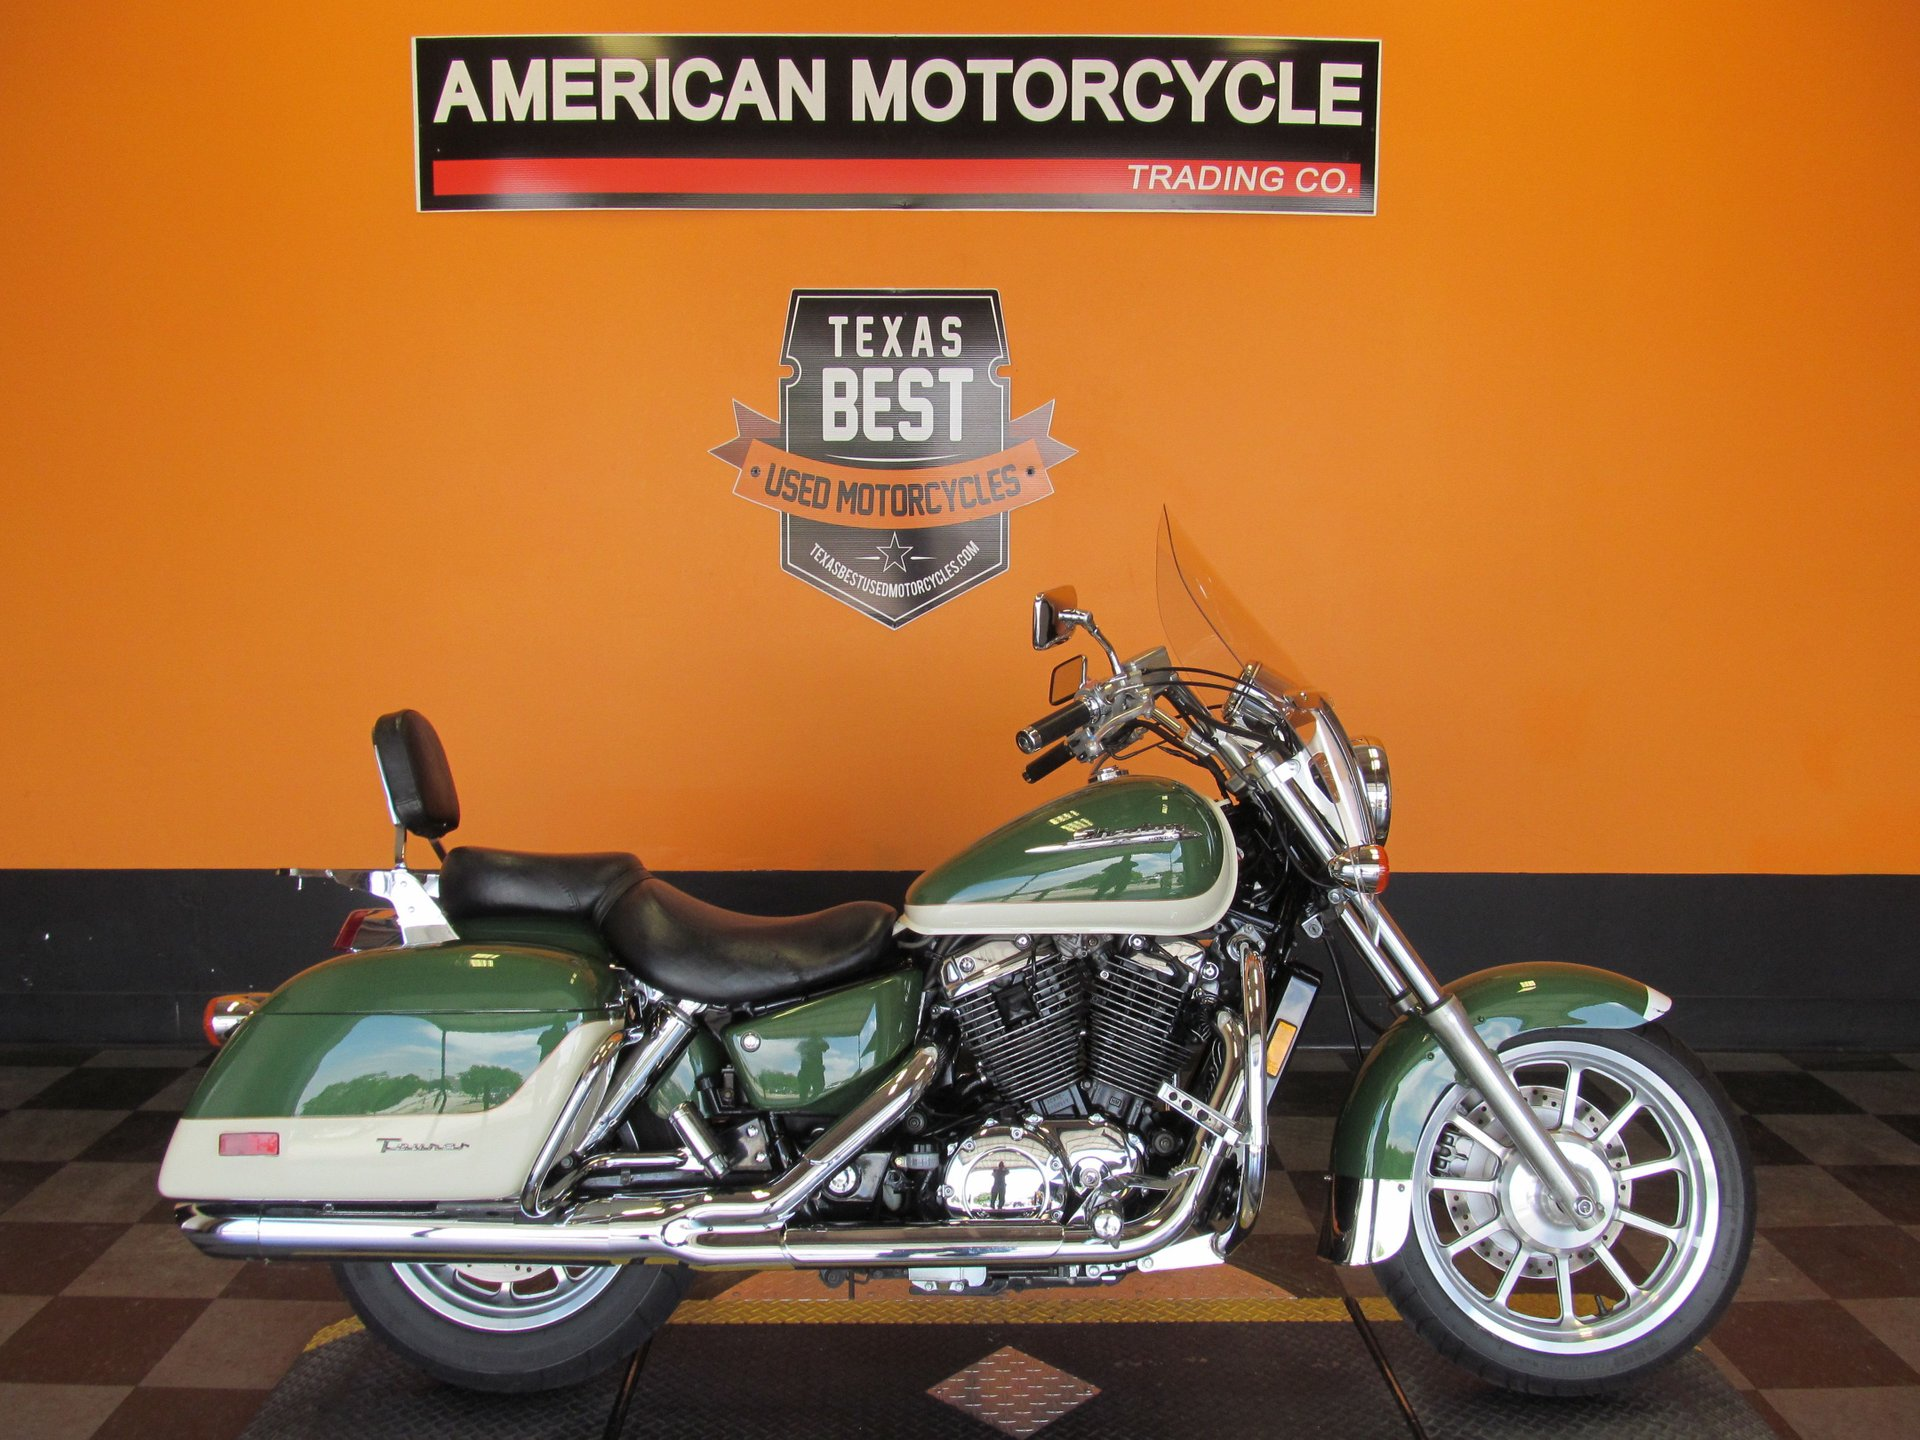 1999 honda shadow ace tour vt1100t2x